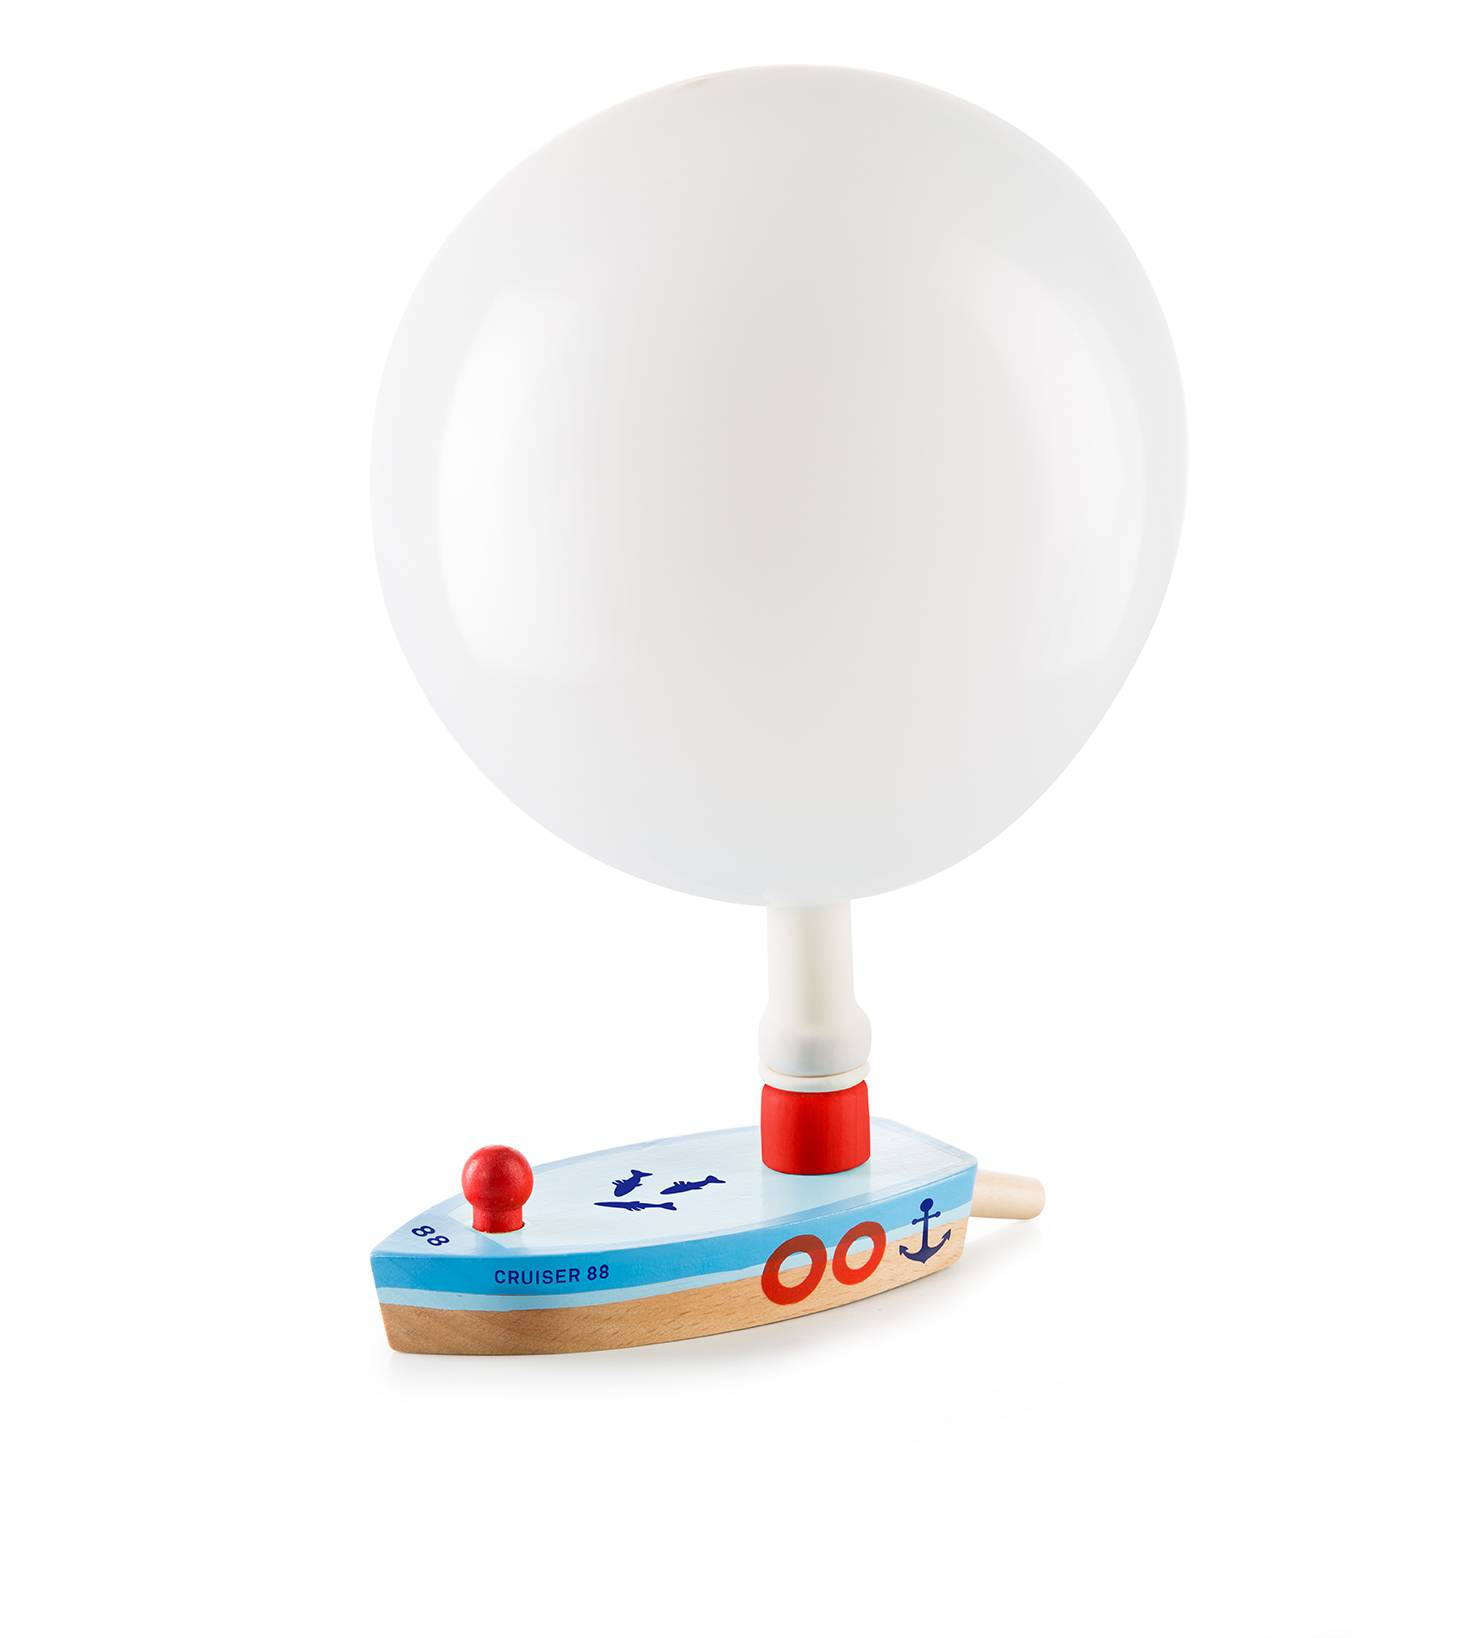 Image of   Ballon båd - Balloon Pusters (Cruiser 88)